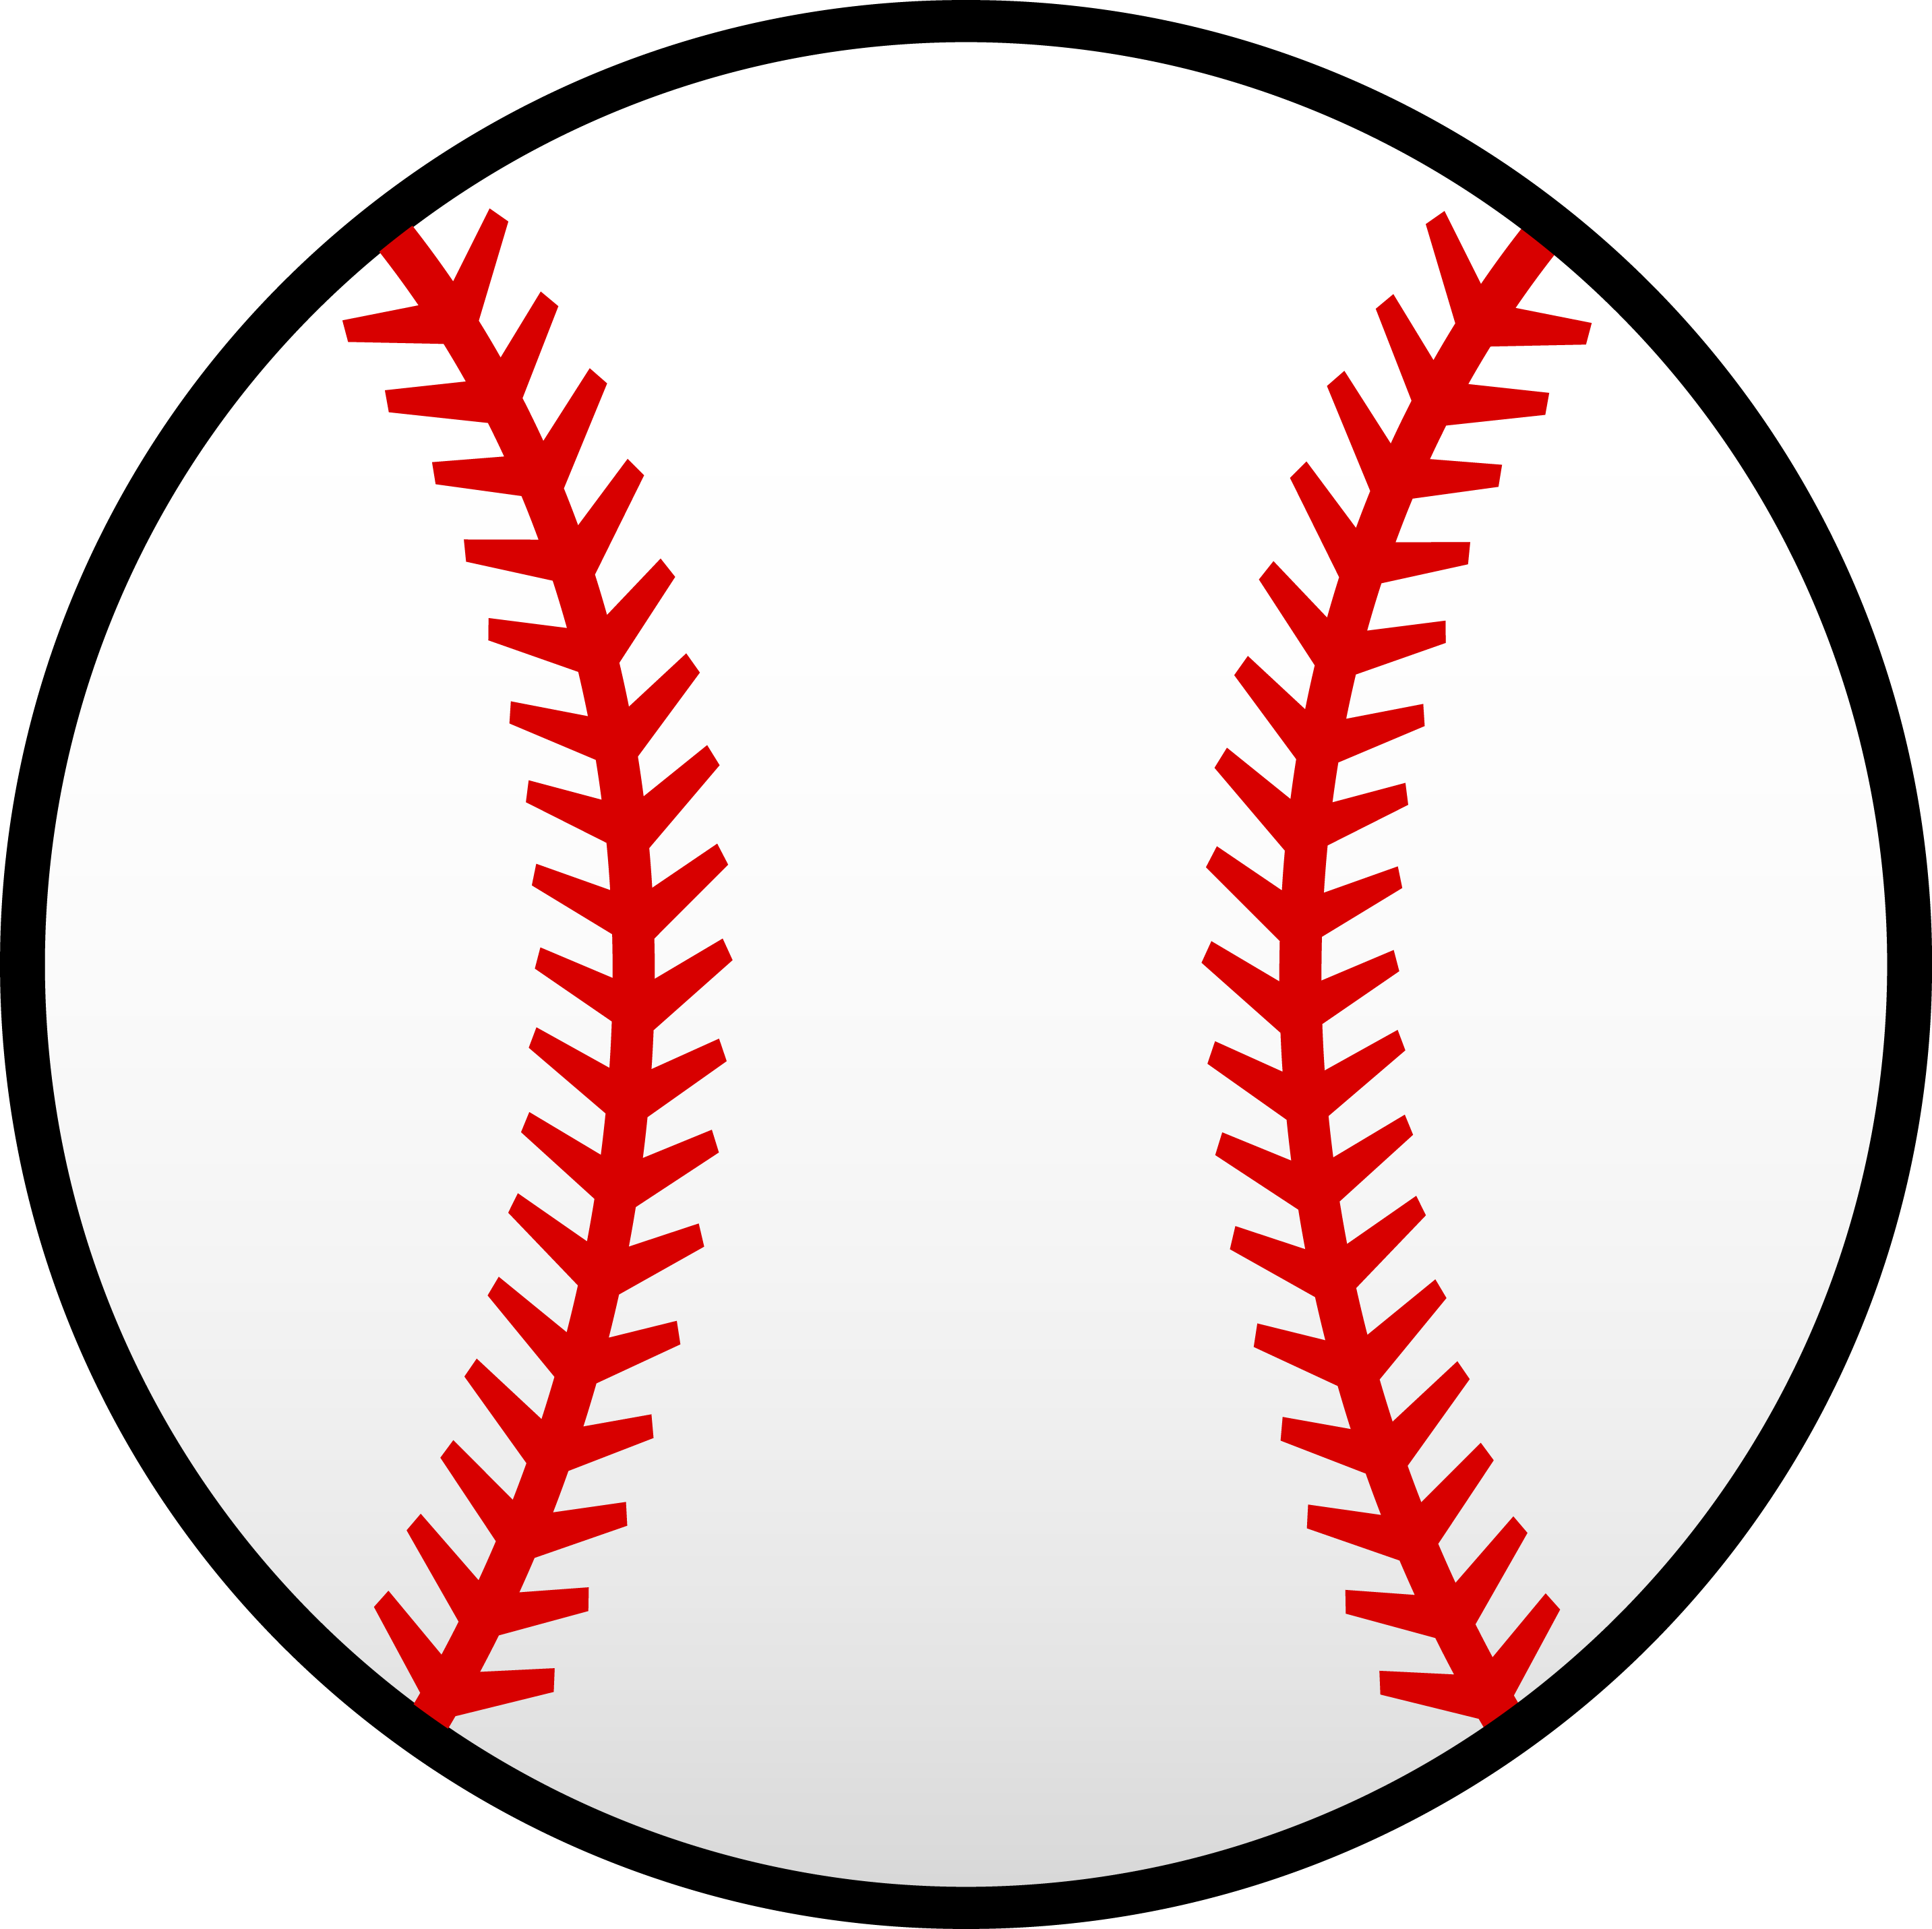 softball laces clipart 20 free Cliparts   Download images ...